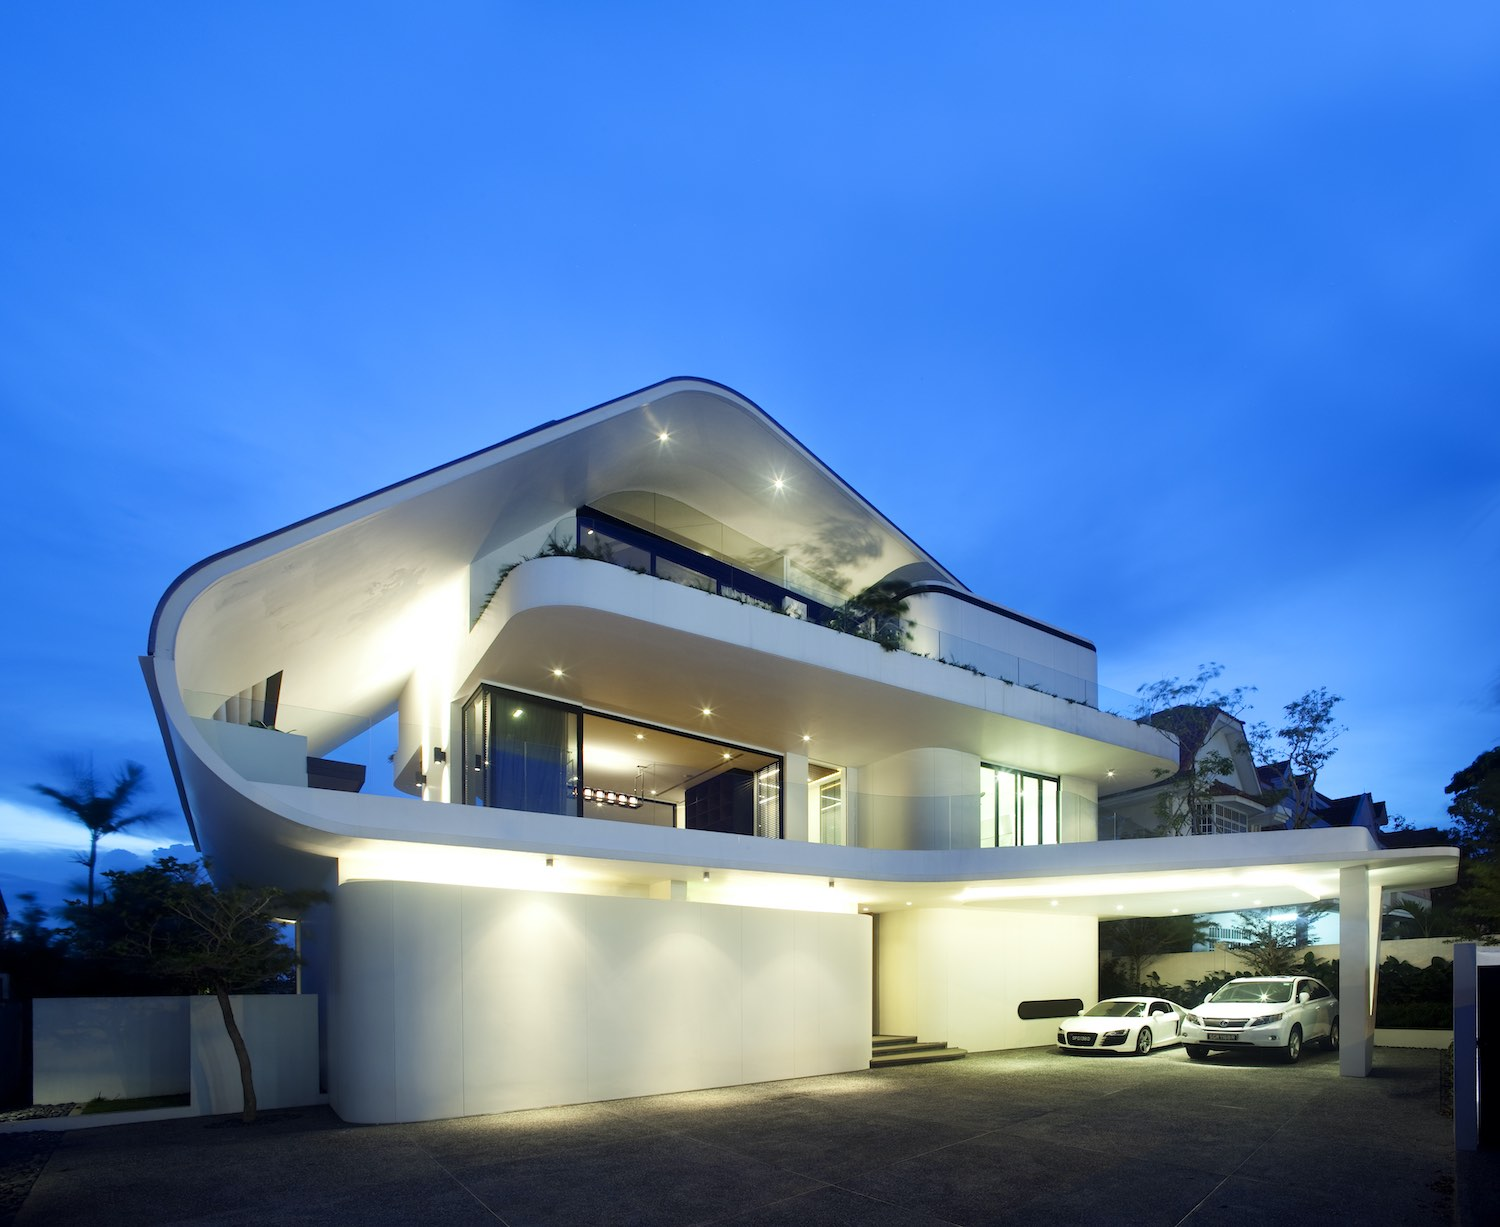 the curvy house illuminated with bulb lights at night